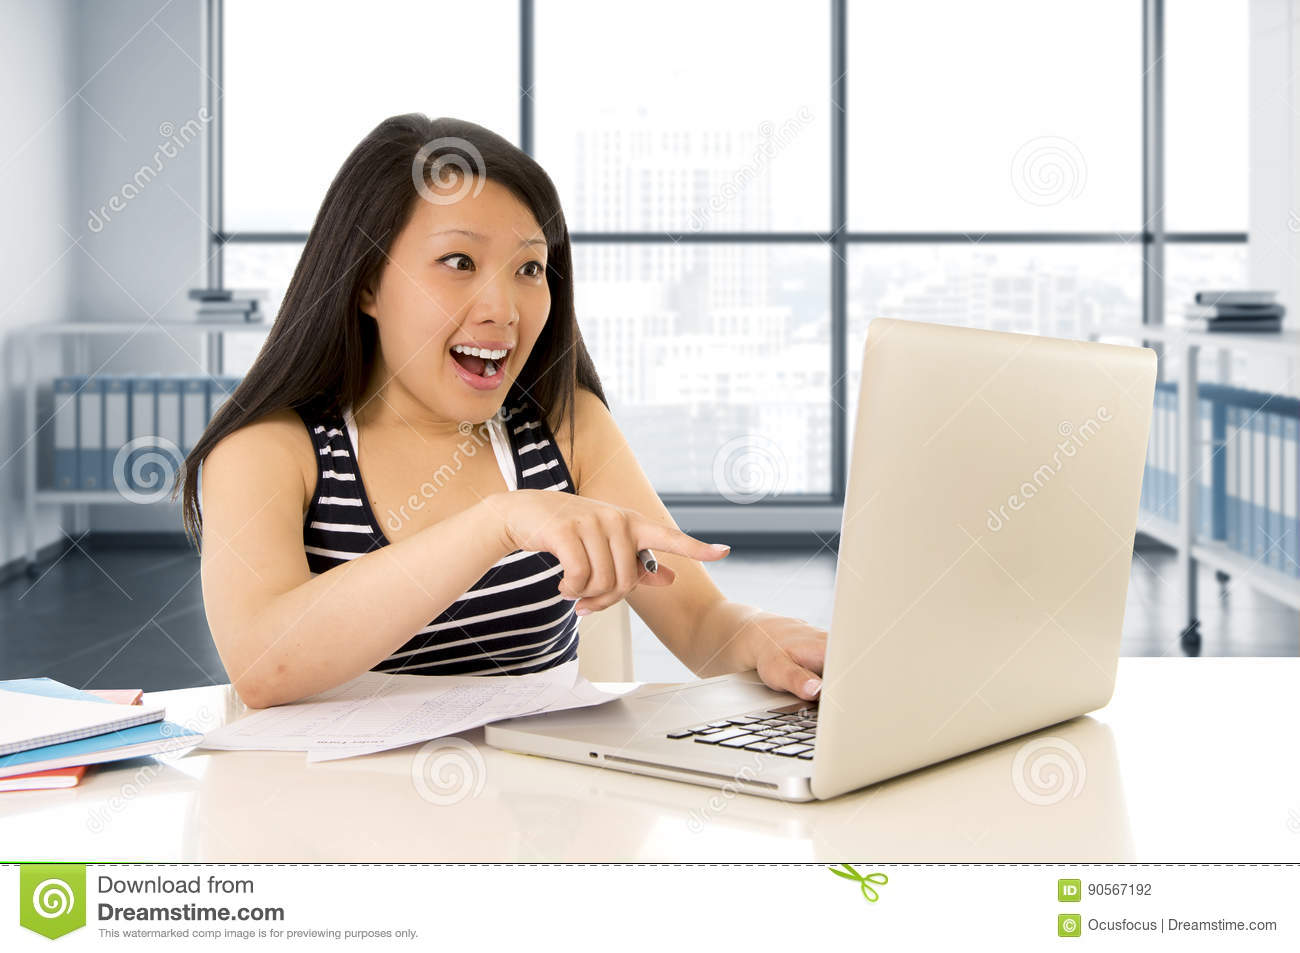 Happy chinese asian woman working and studying on her computer sitting at modern office desk smiling cheerful